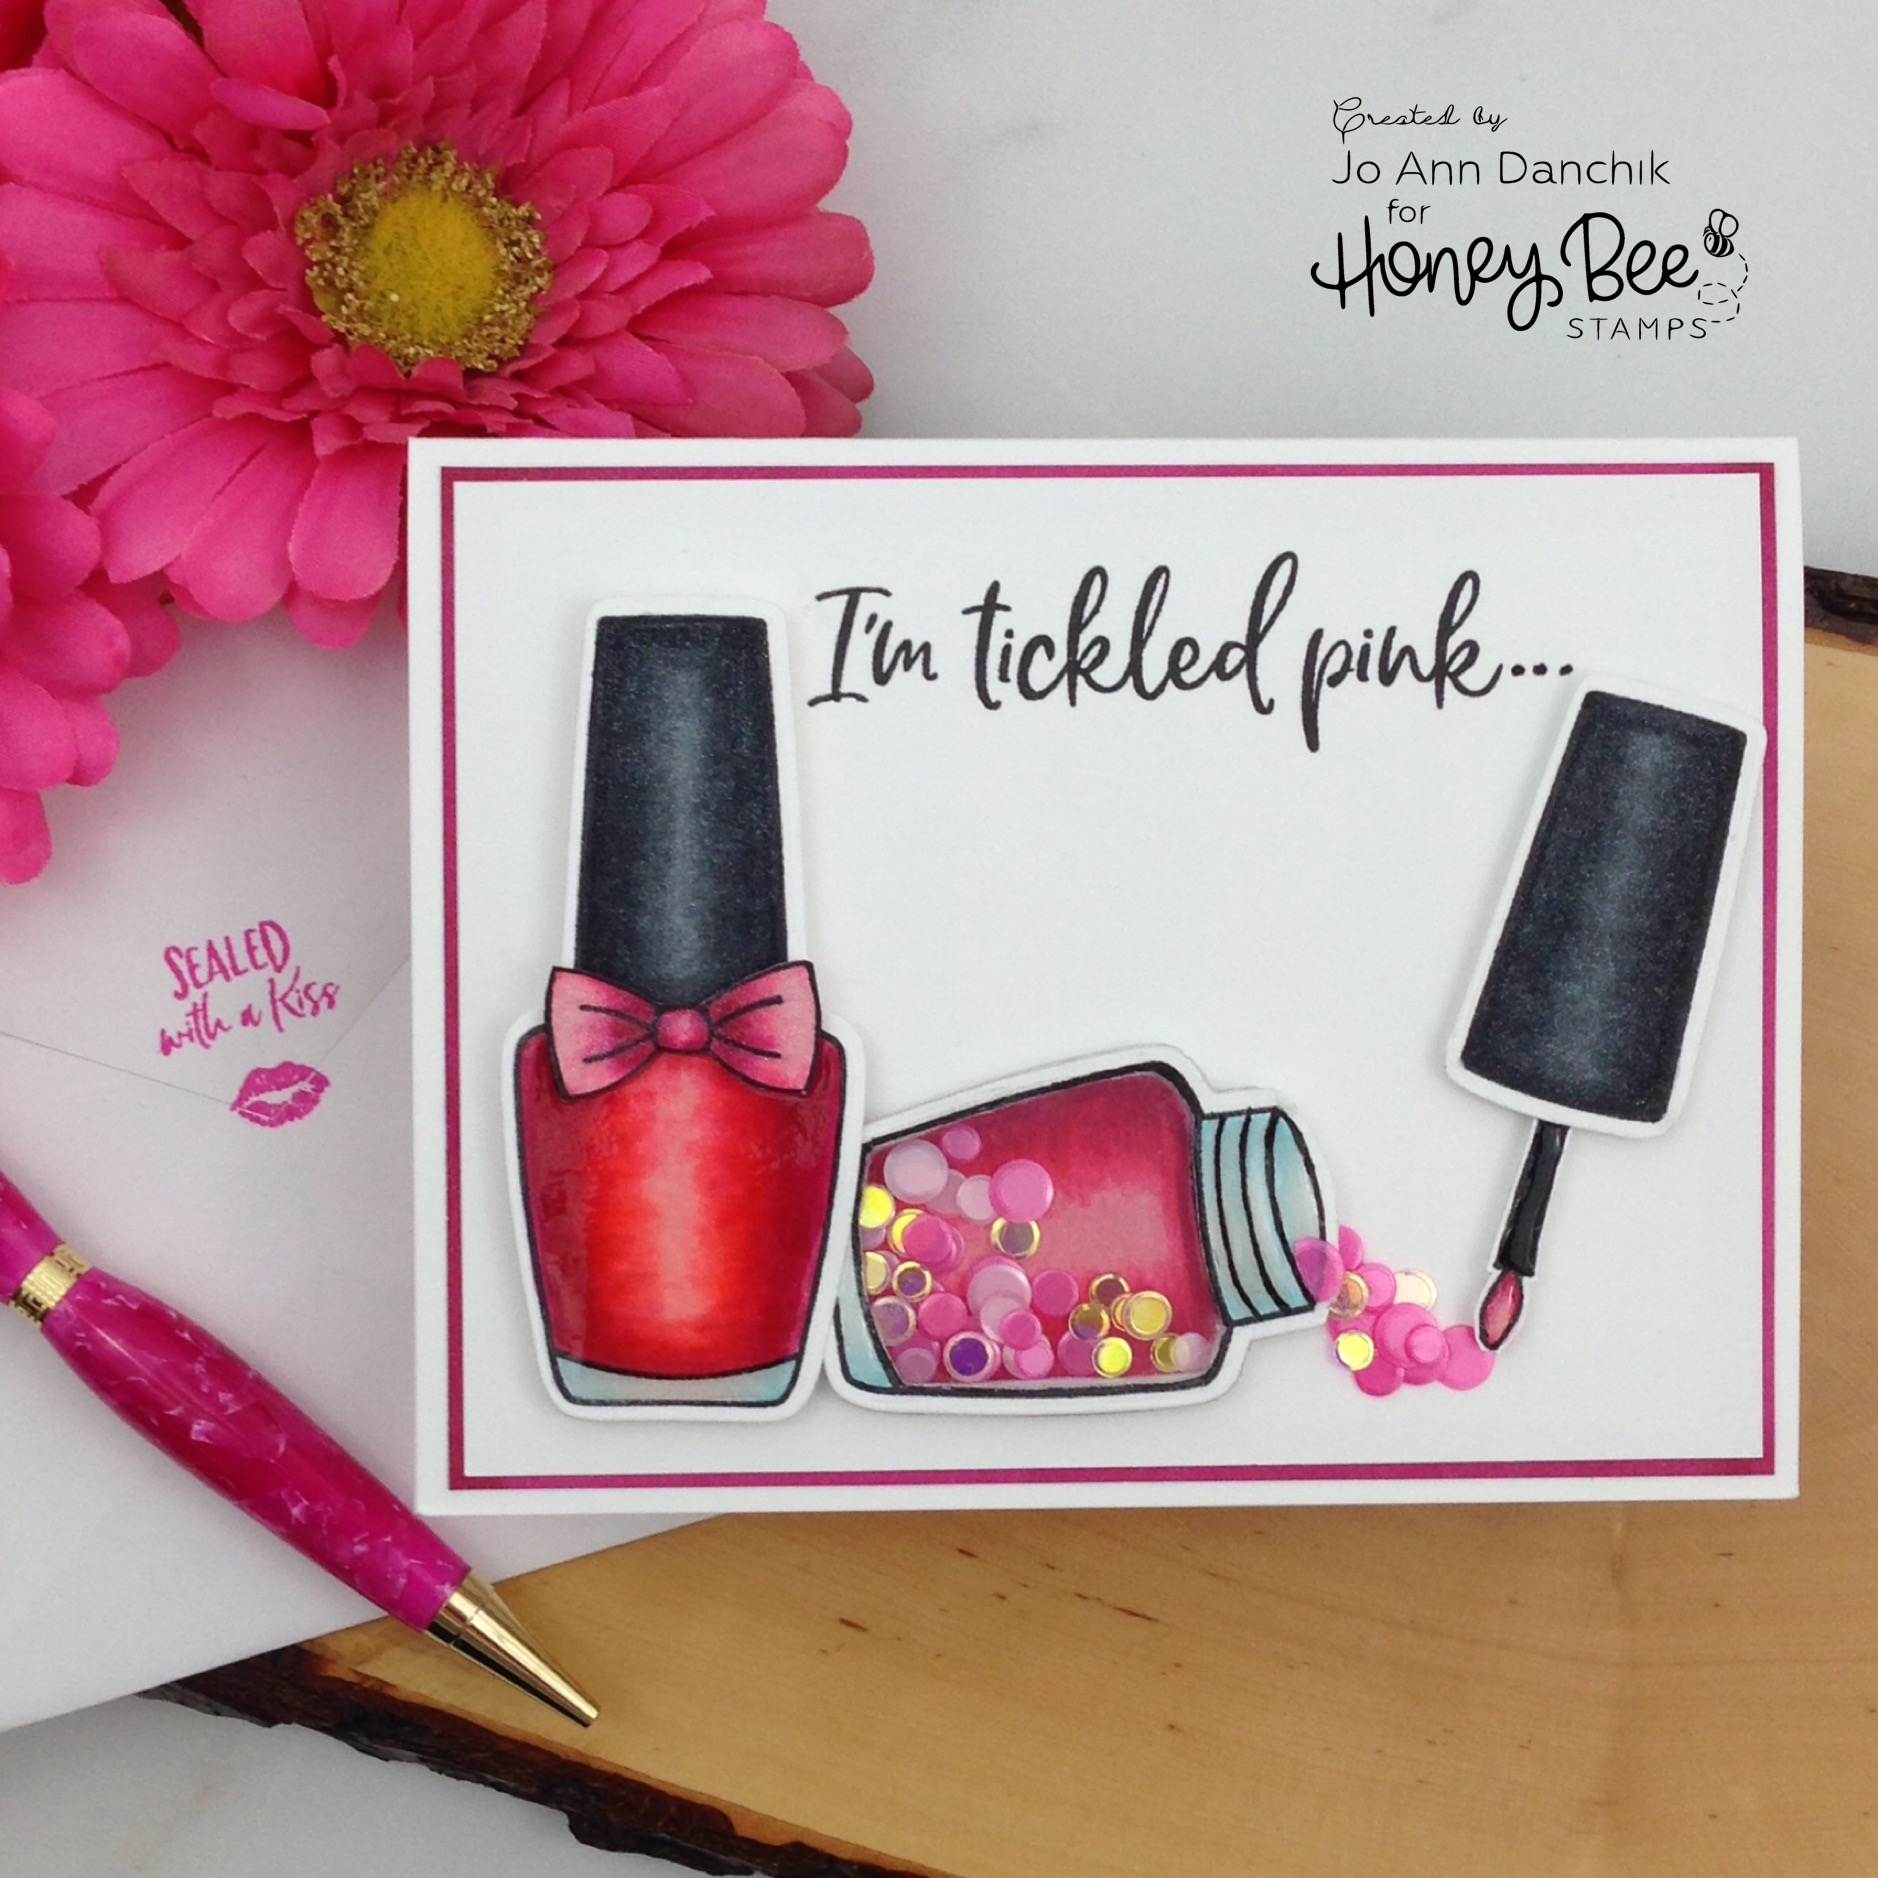 Creative Sundays With Jo Ann: Tickled Pink